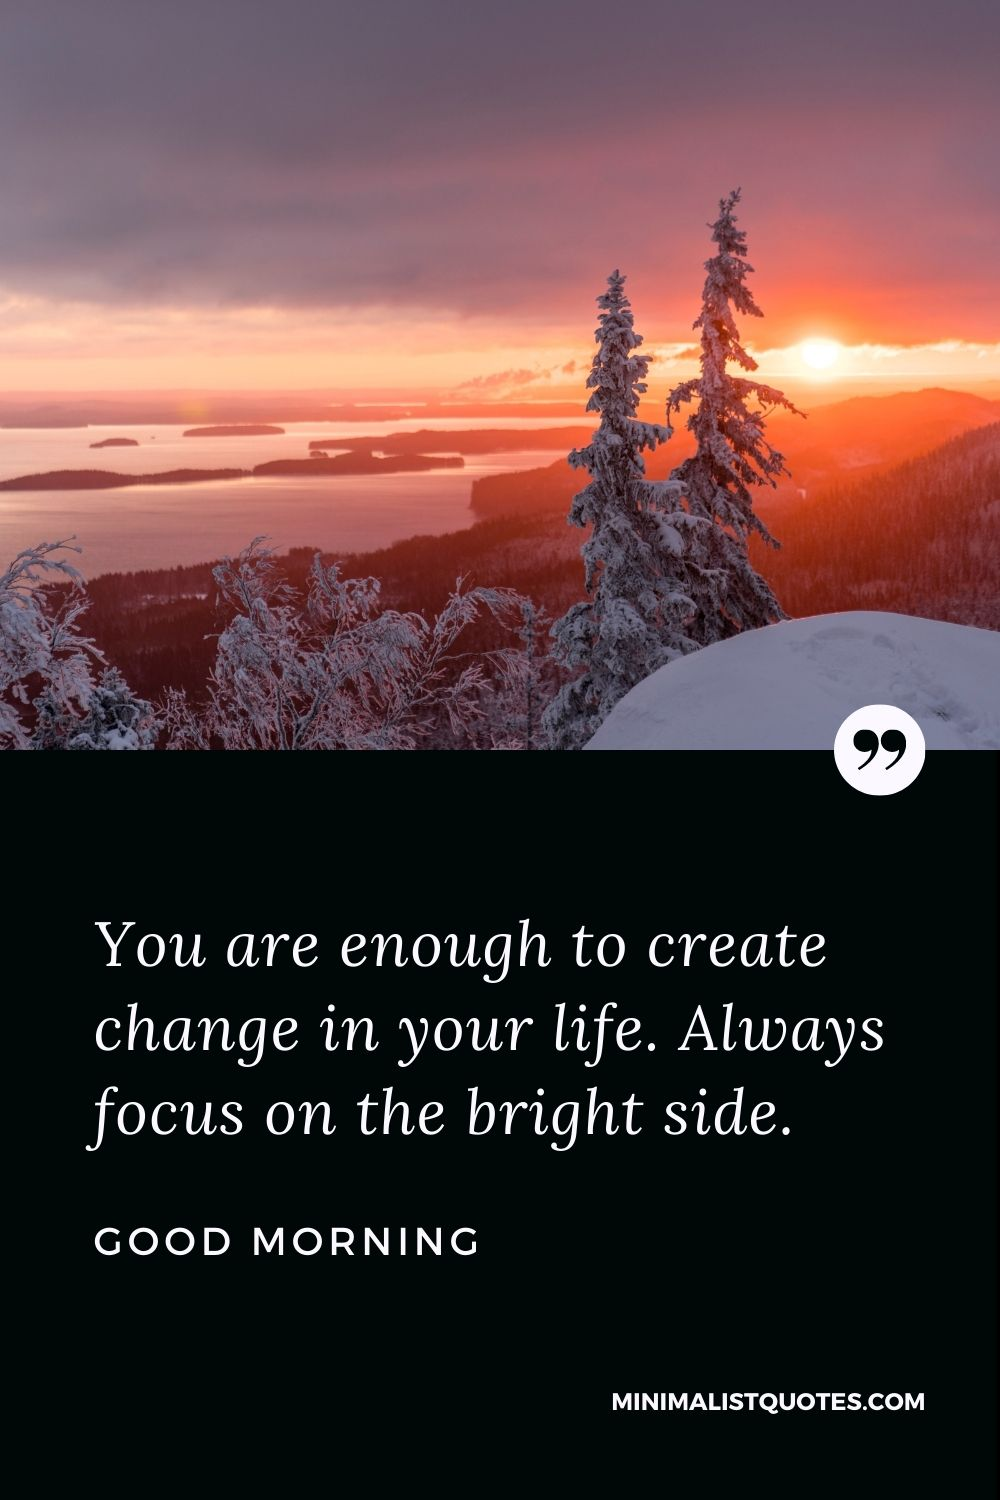 Good Morning Wish & Message With Image: You are enough to create change in your life. Always focus on the bright side.